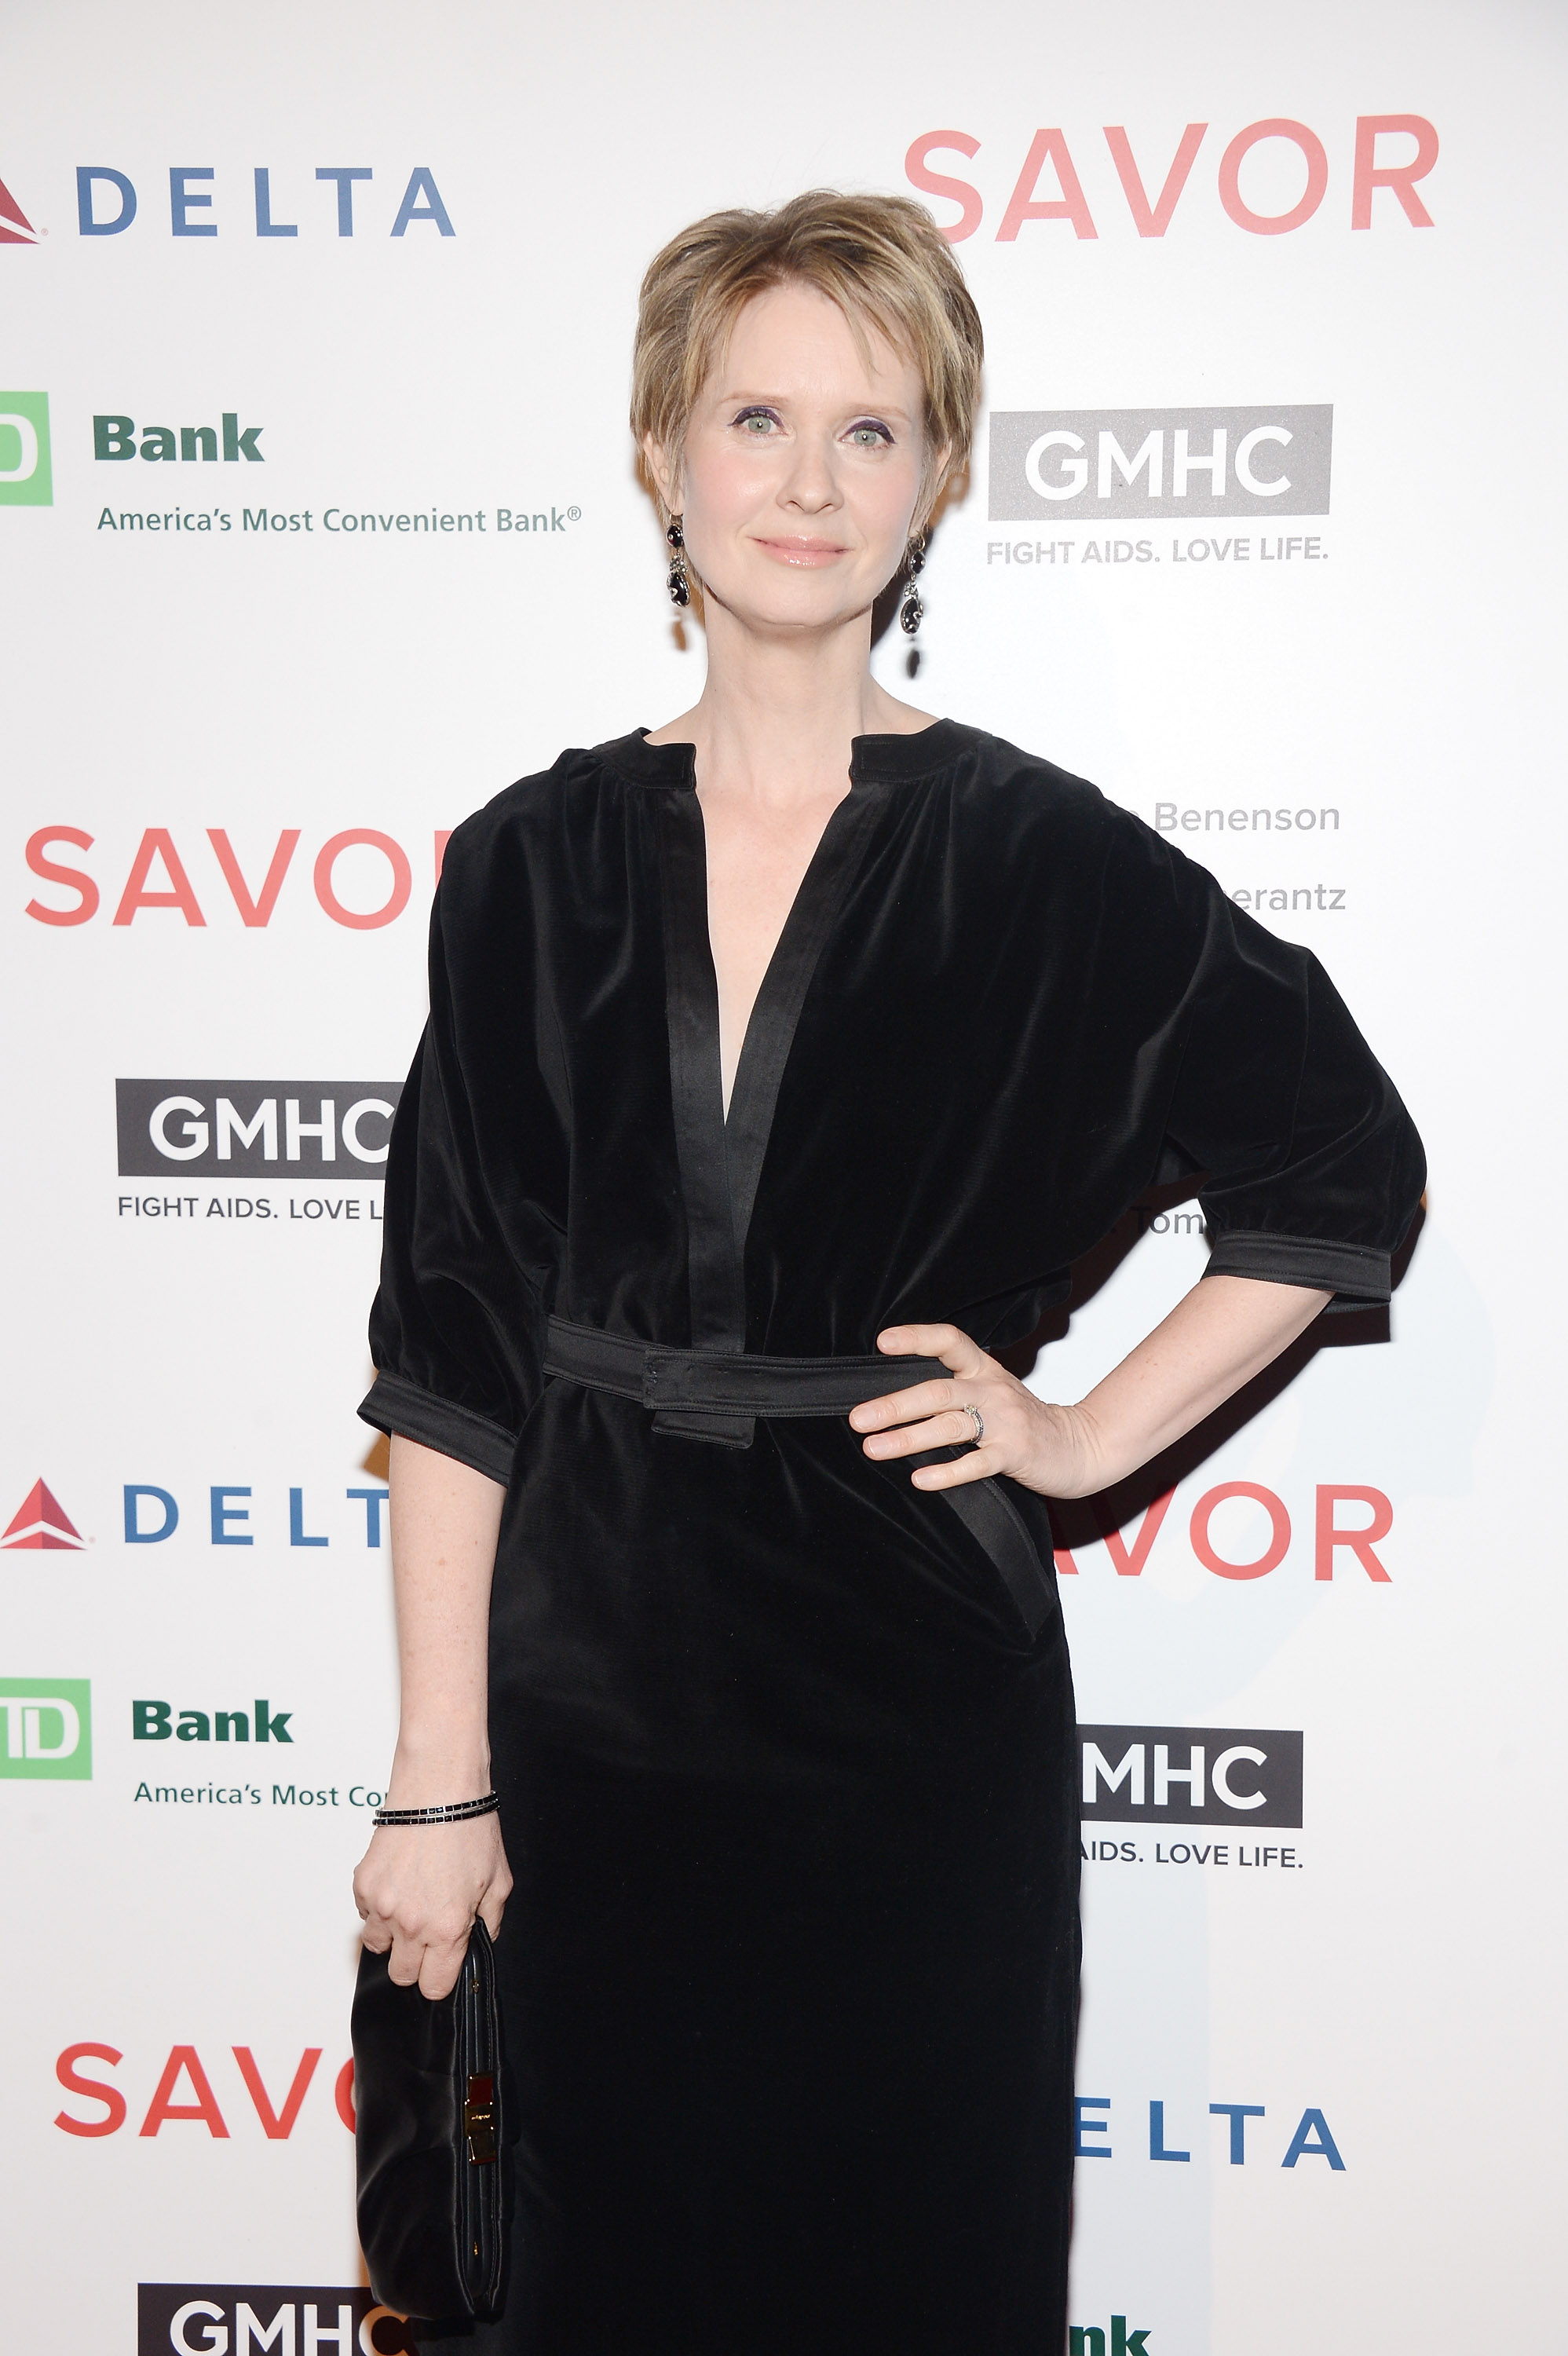 Pastor heckles Sex And The City star Cynthia Nixon for mentioning wife during cancer speech